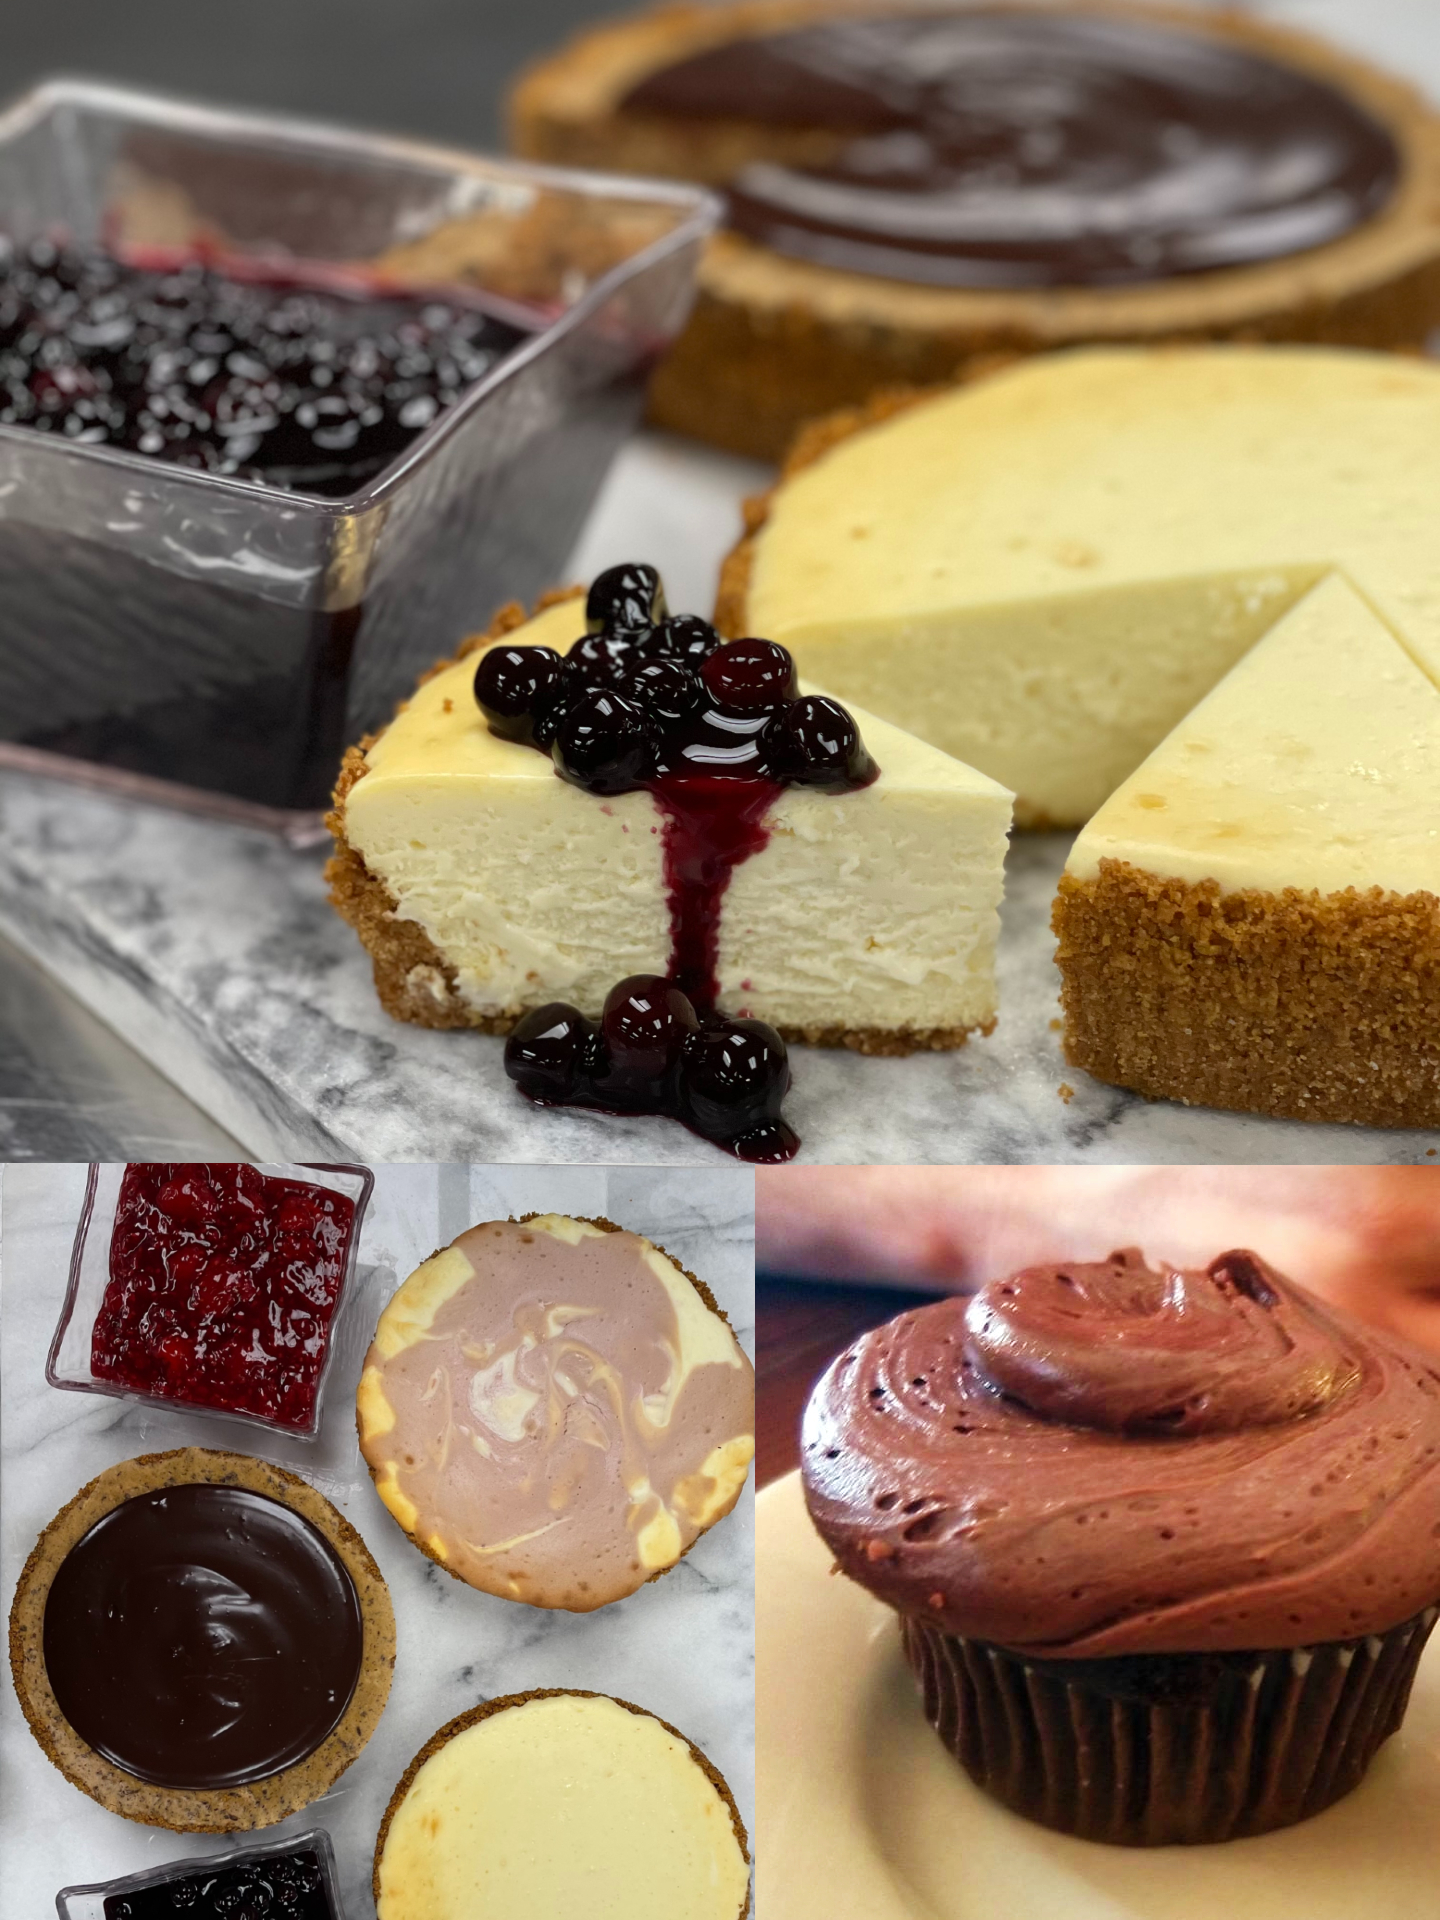 Cheesecakes and Cupcakes for Mother's Day!